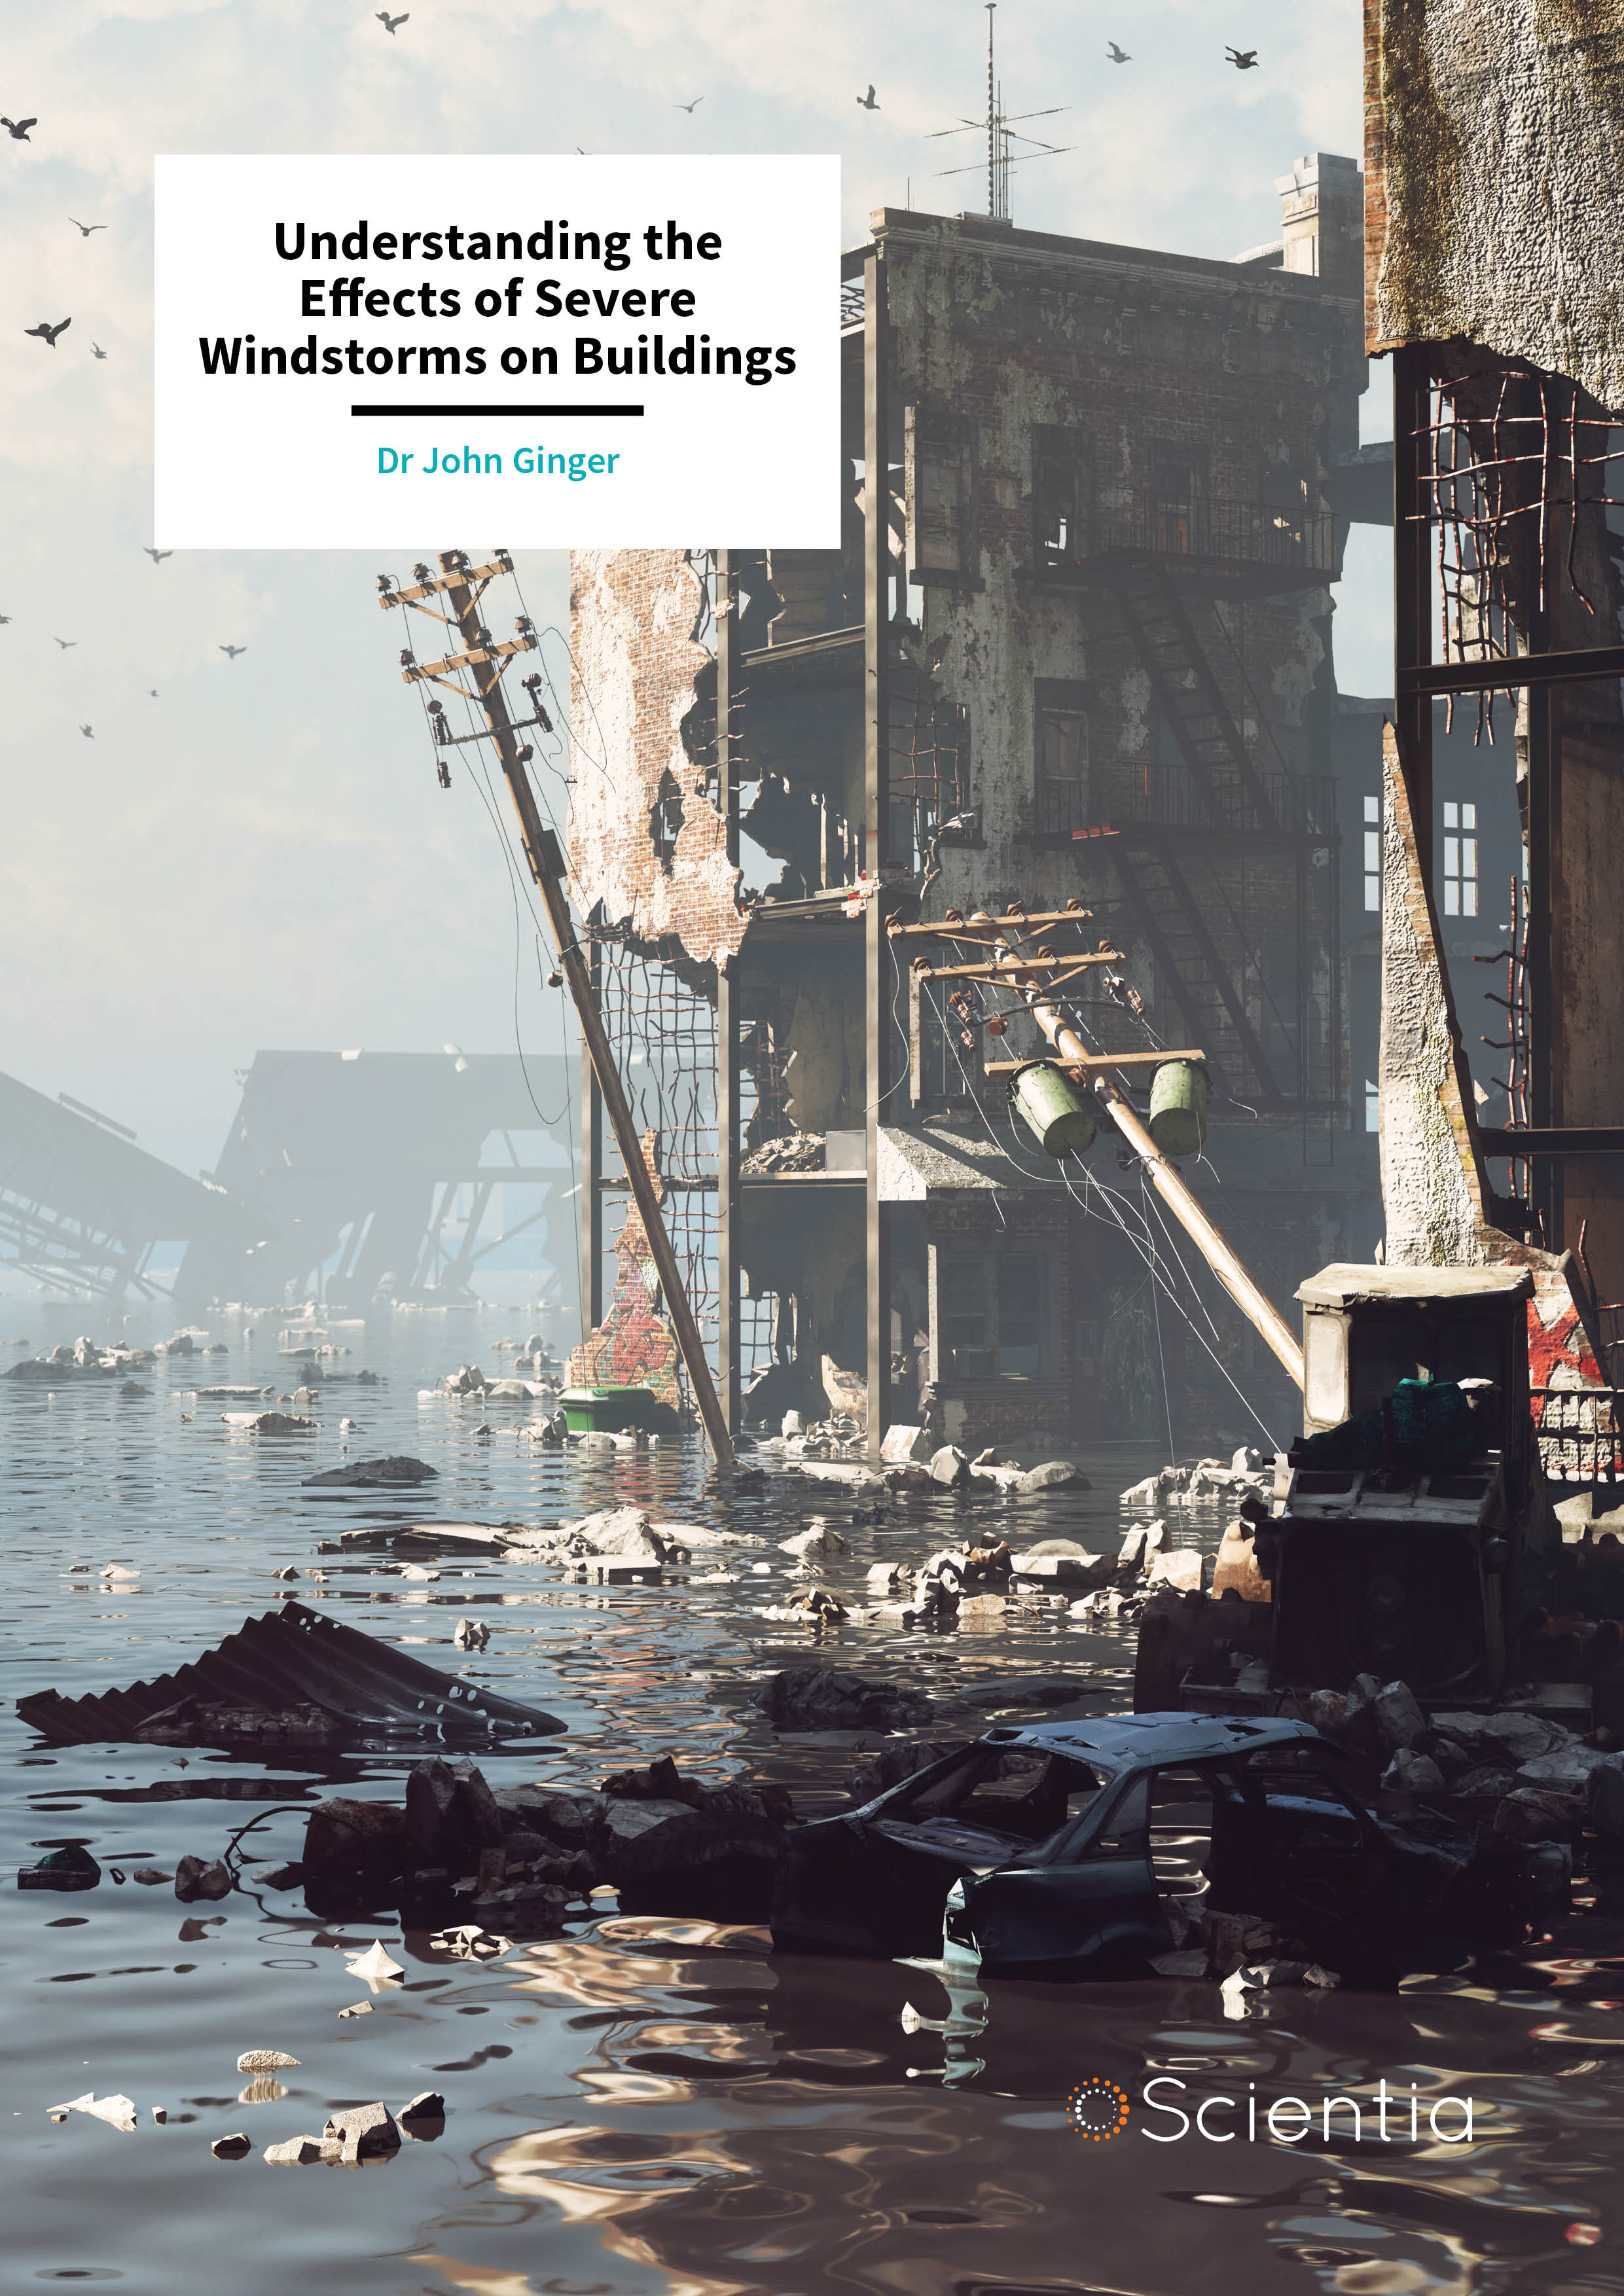 Dr John Ginger – Understanding the Effects of Severe Windstorms on Buildings